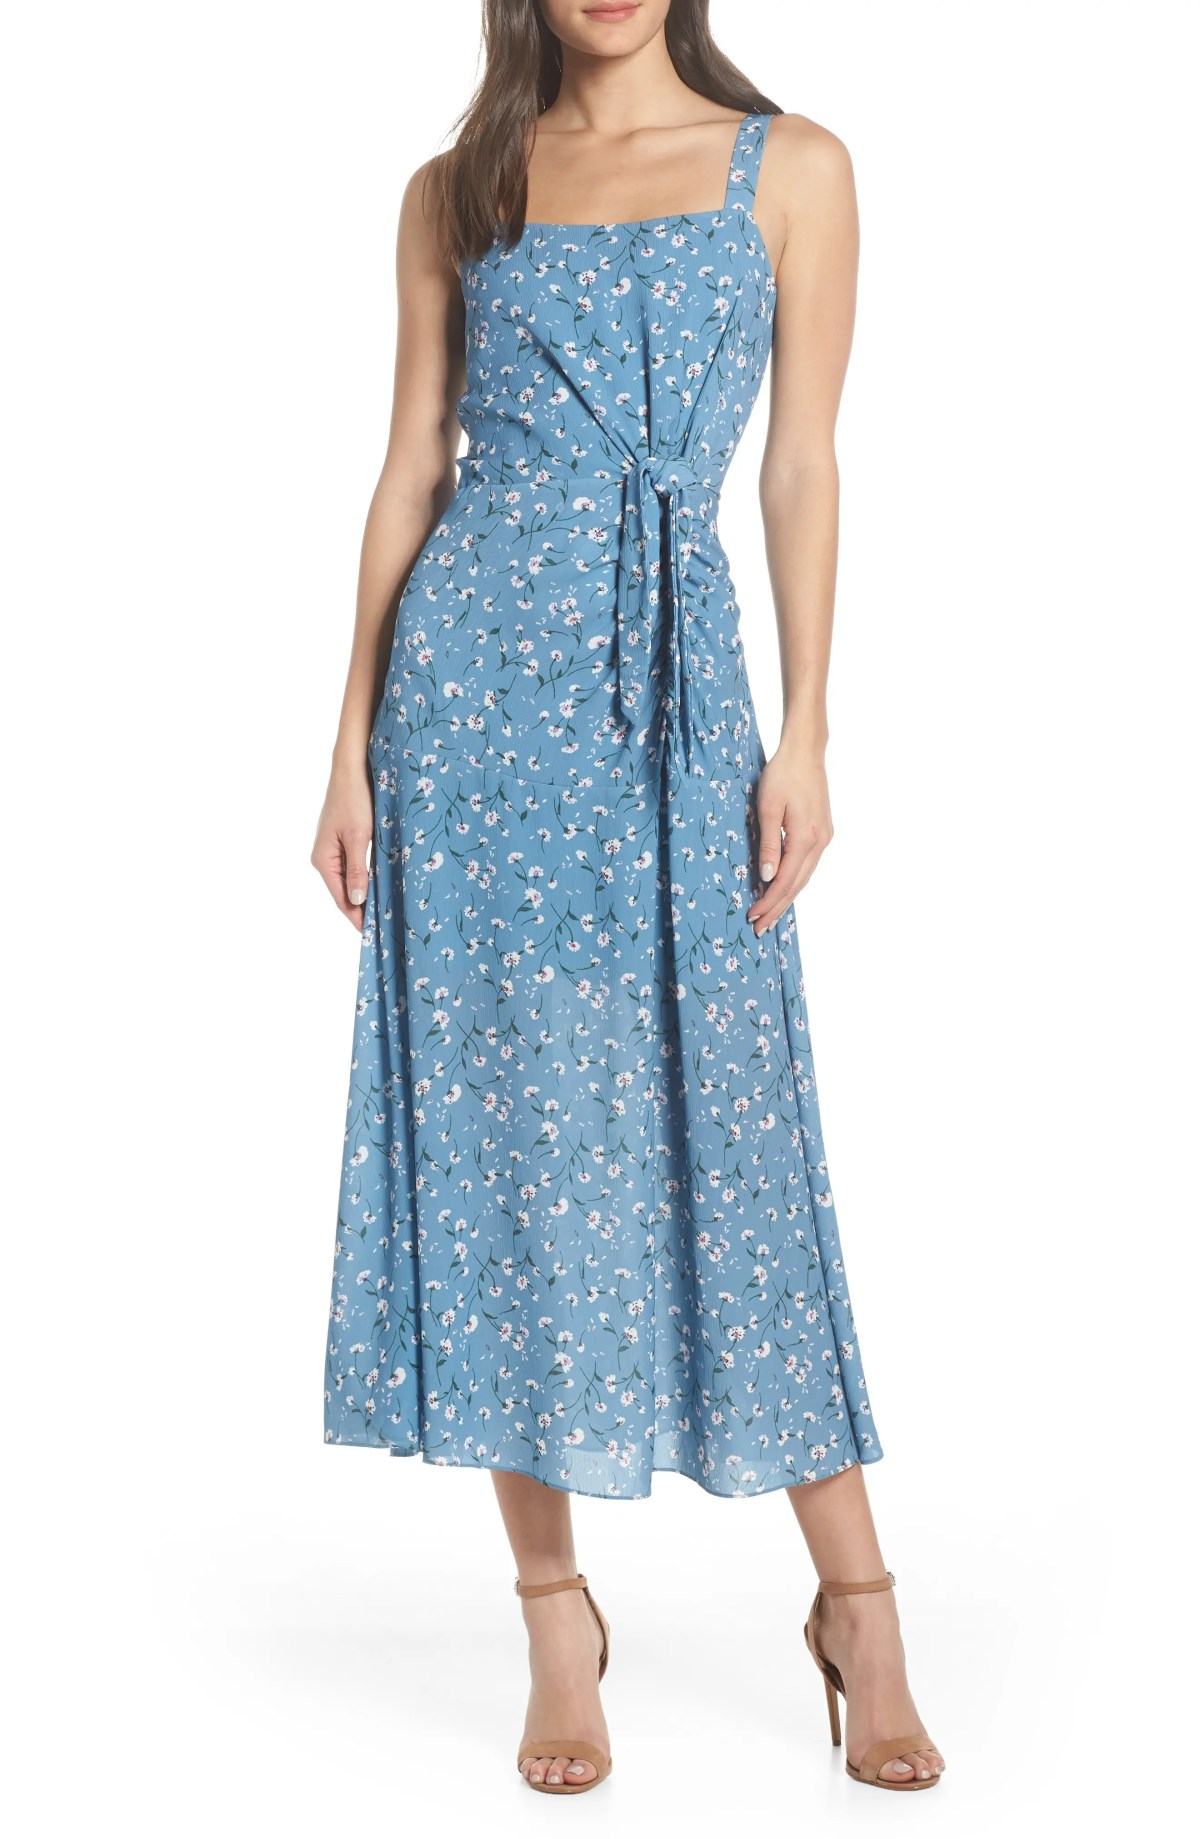 CHELSEA28 Floral Print Maxi Dress, Main, color, BLUE FLORAL